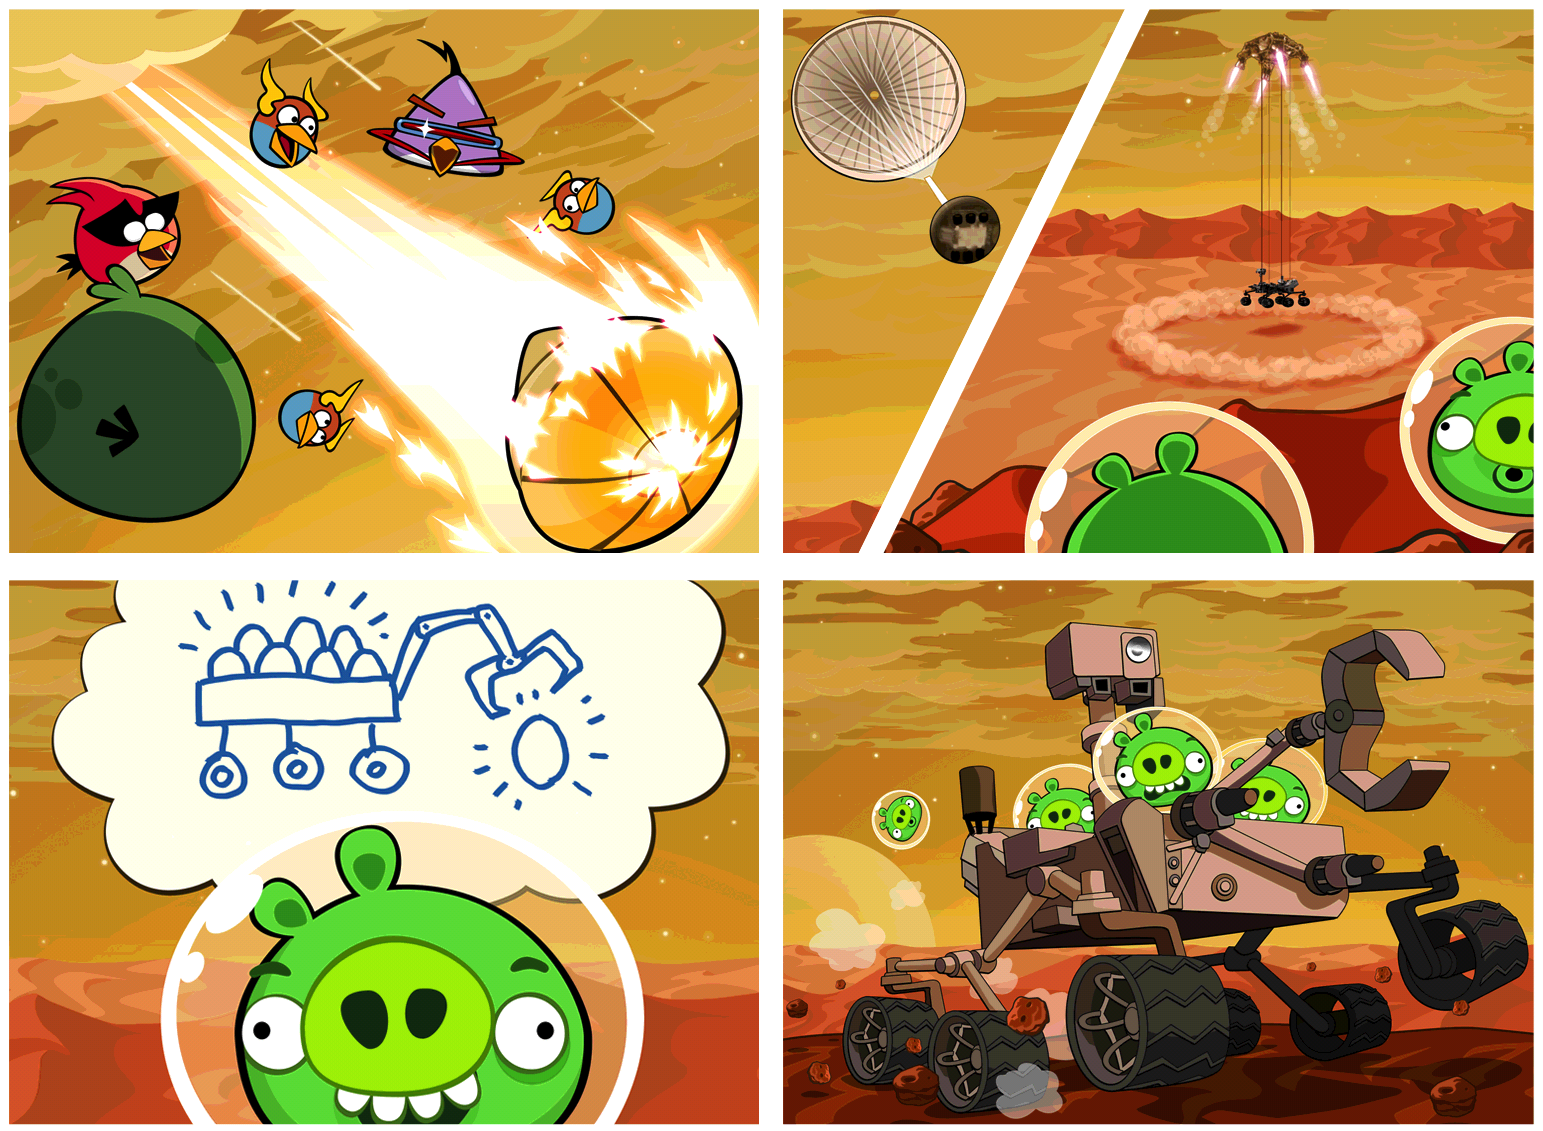 Rovia Angry Birds Space with Mars Rover Curiosity COntent